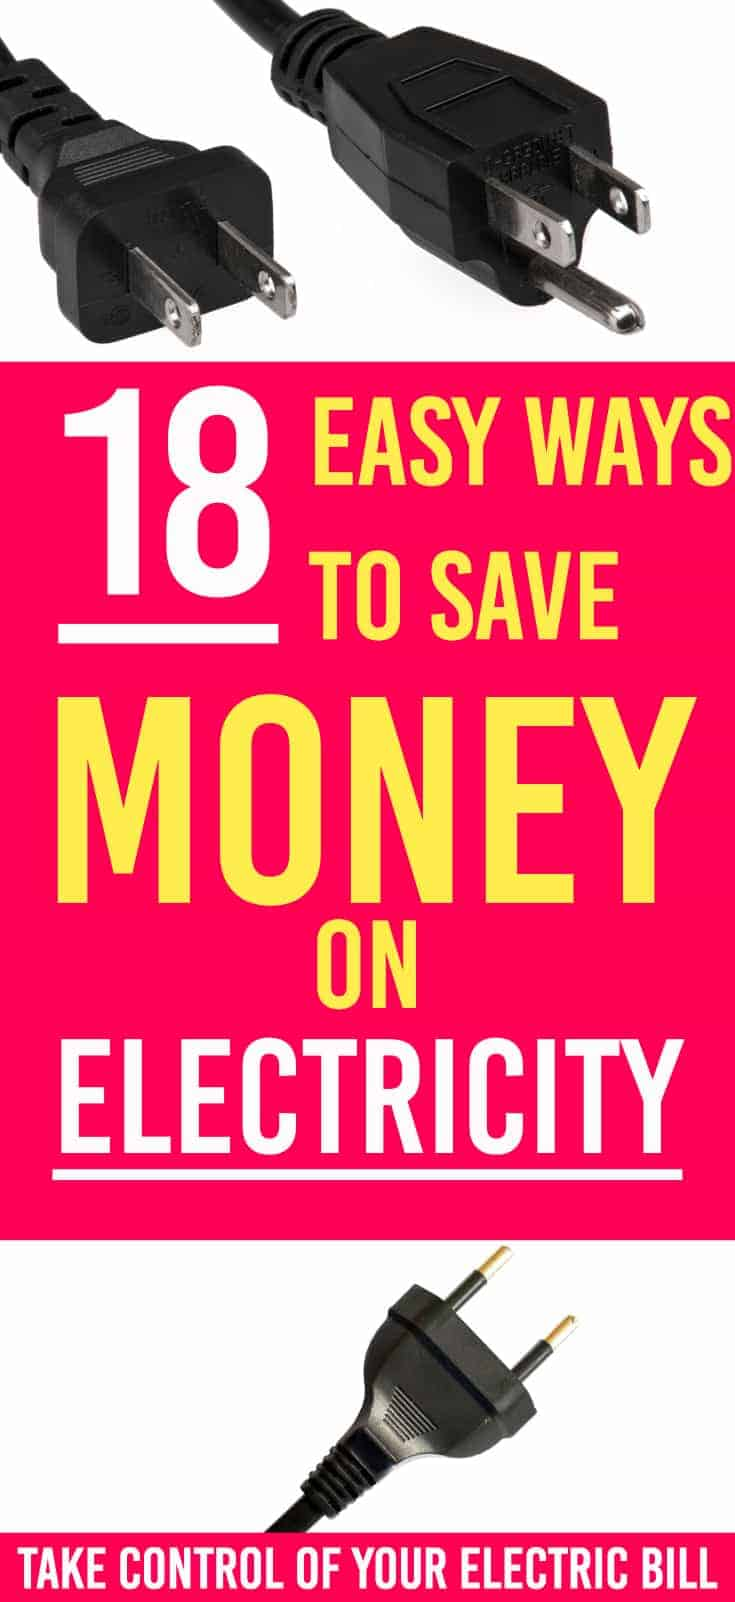 By making these smart money moves you can save money on your electricity bill month after month. Here are 18 ways for you to save money on electricity. | Saving money | Electricity | Saving money on electricity  tips |